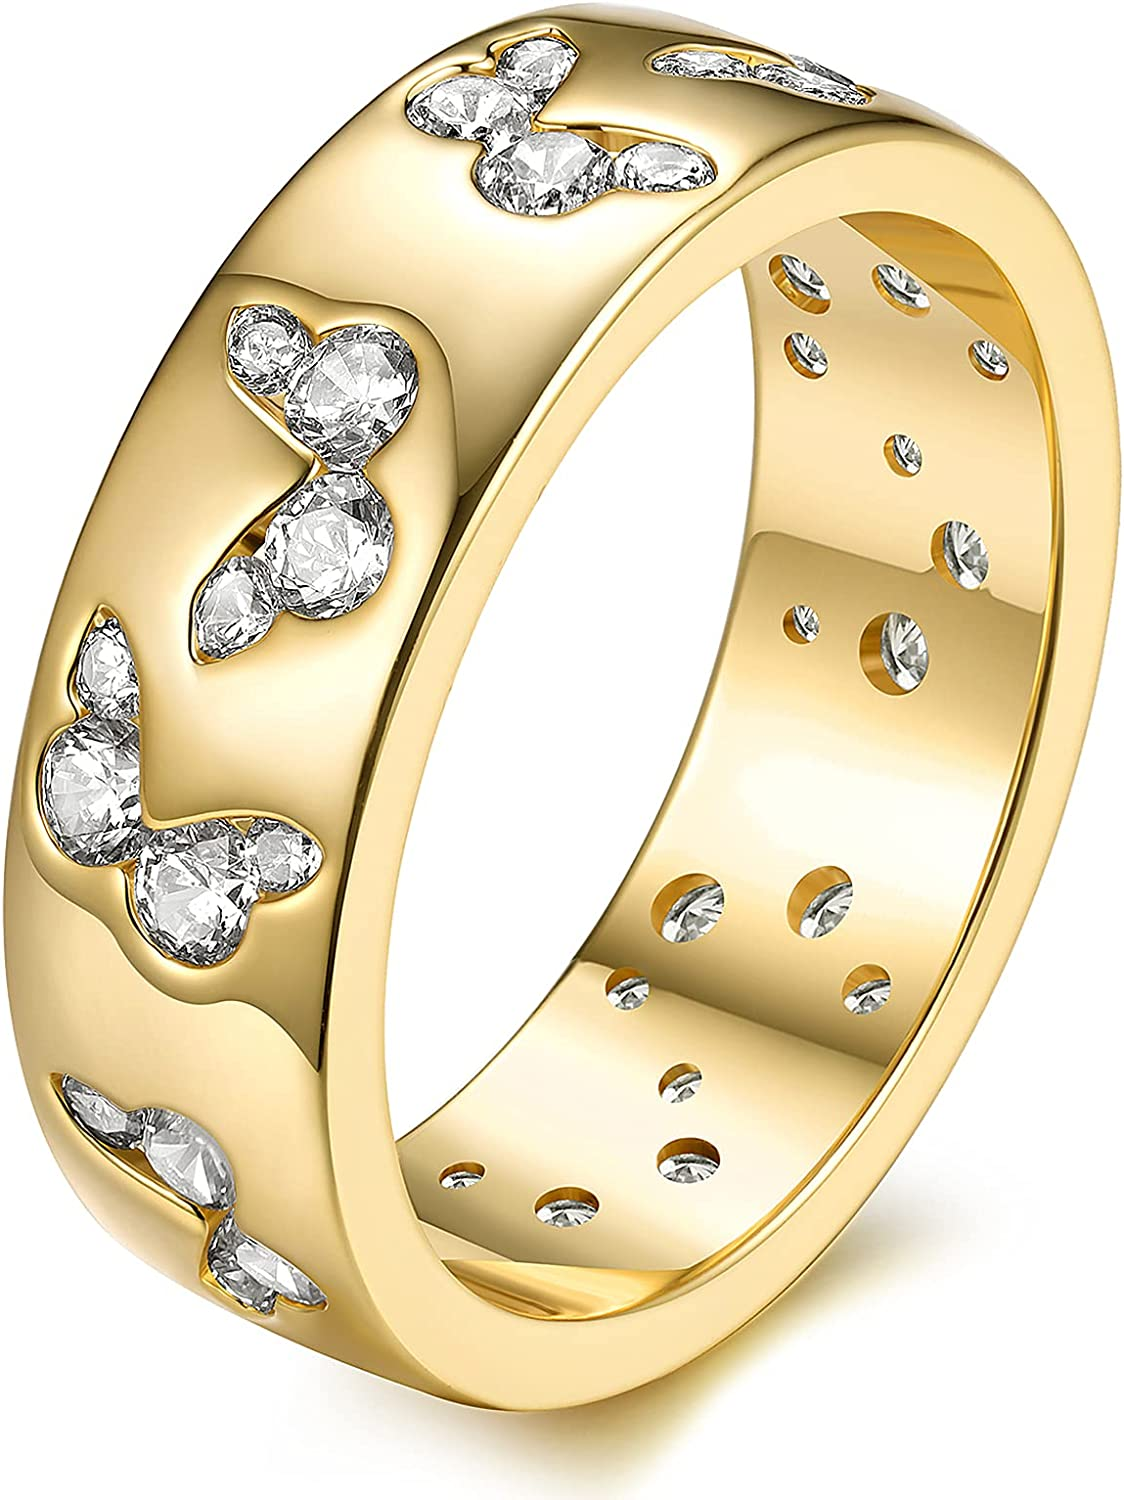 JINEAR 6mm Cubic Zirconia Butterfly Rings Wedding Bands for Women and Men 14K Gold Plated Statement Stackable Ring Gift for Her Size 5 to 10